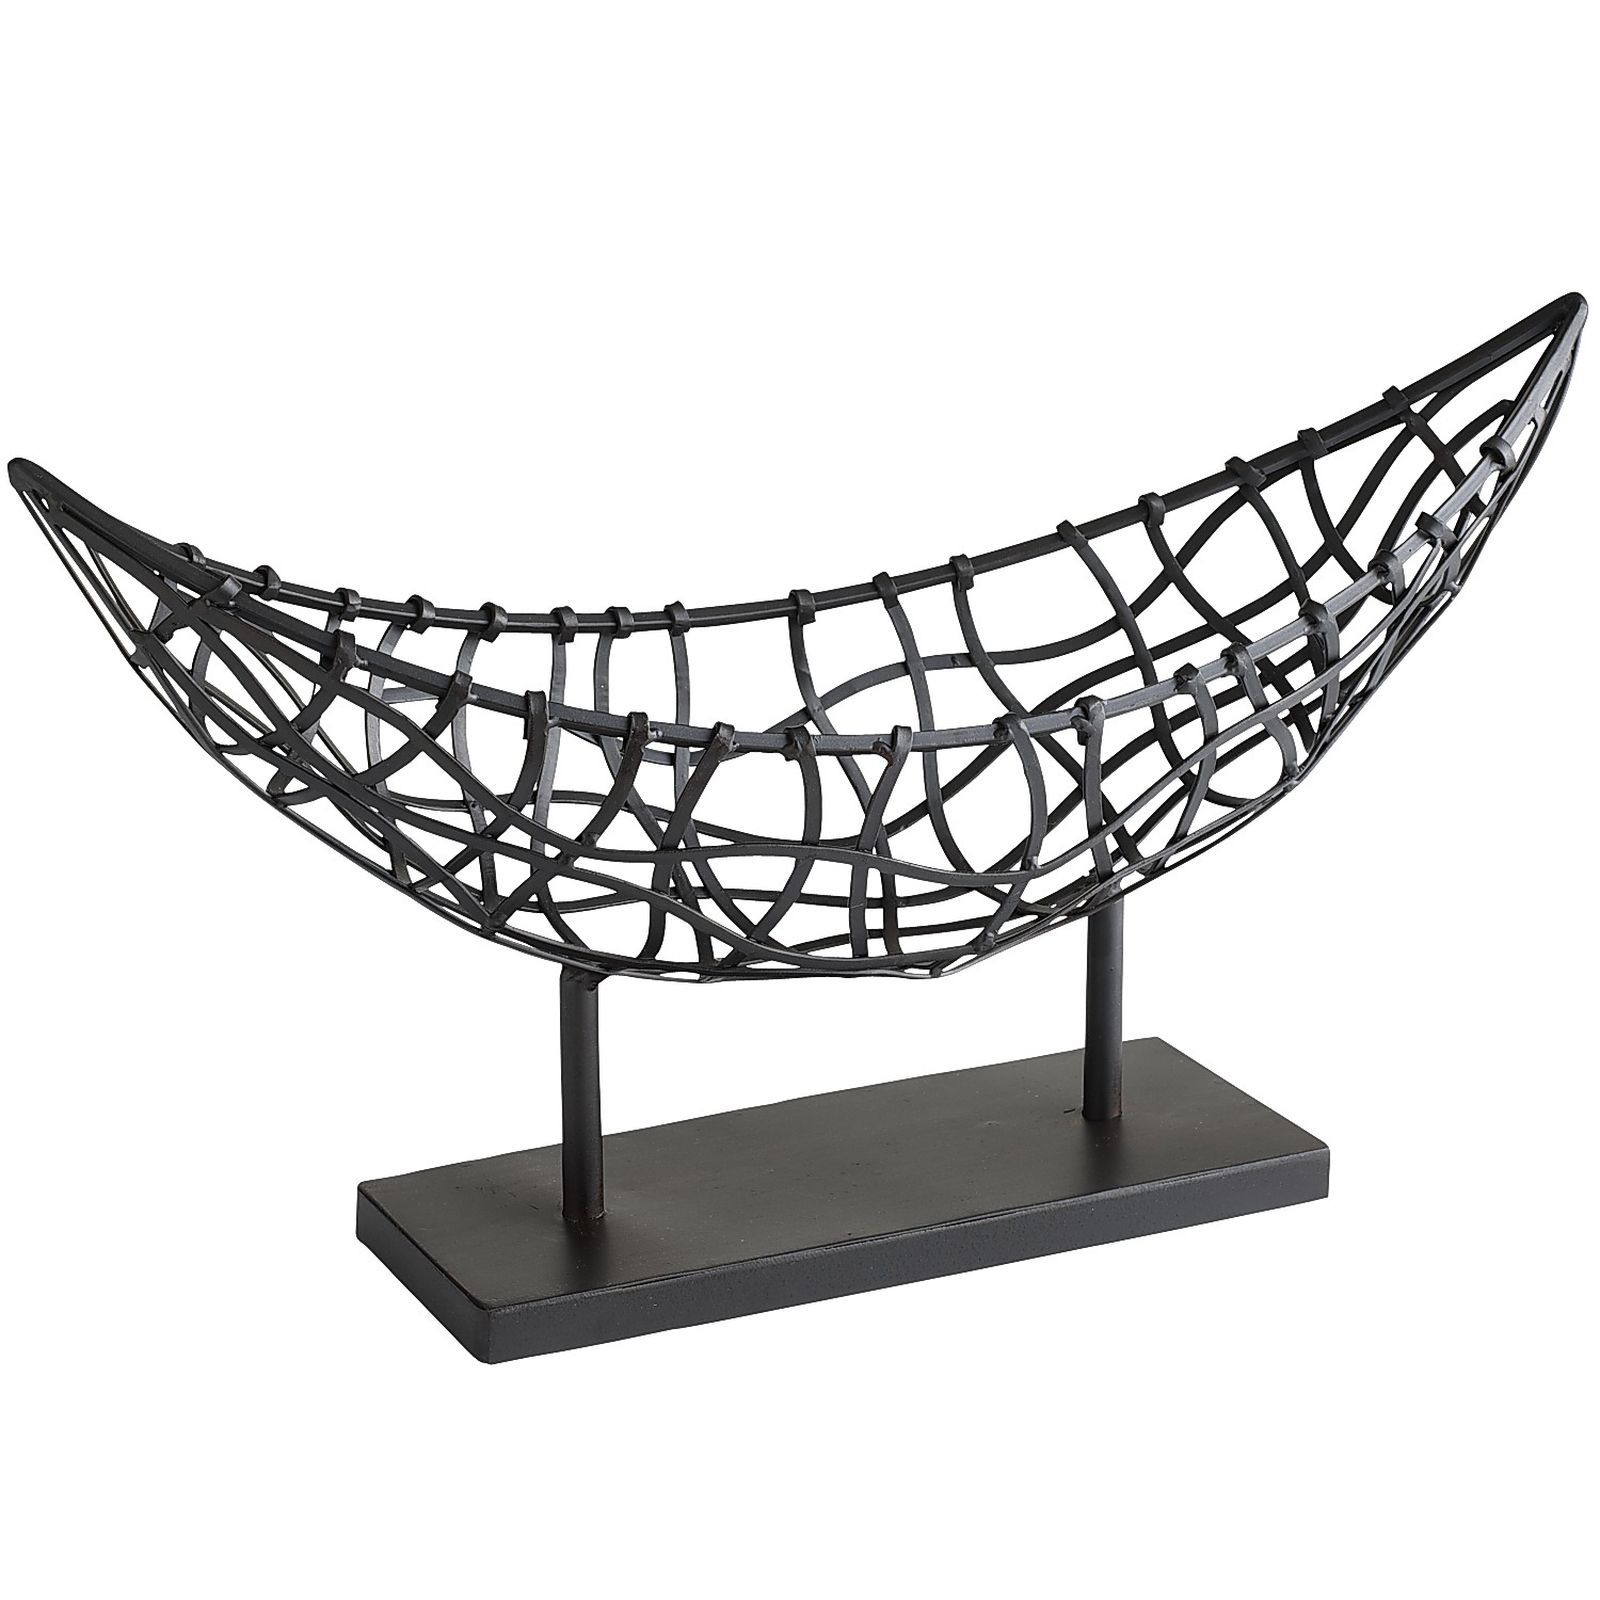 Nomad Black Weave Metal Boat Basket is part of Metal Home Accessories Inspiration -